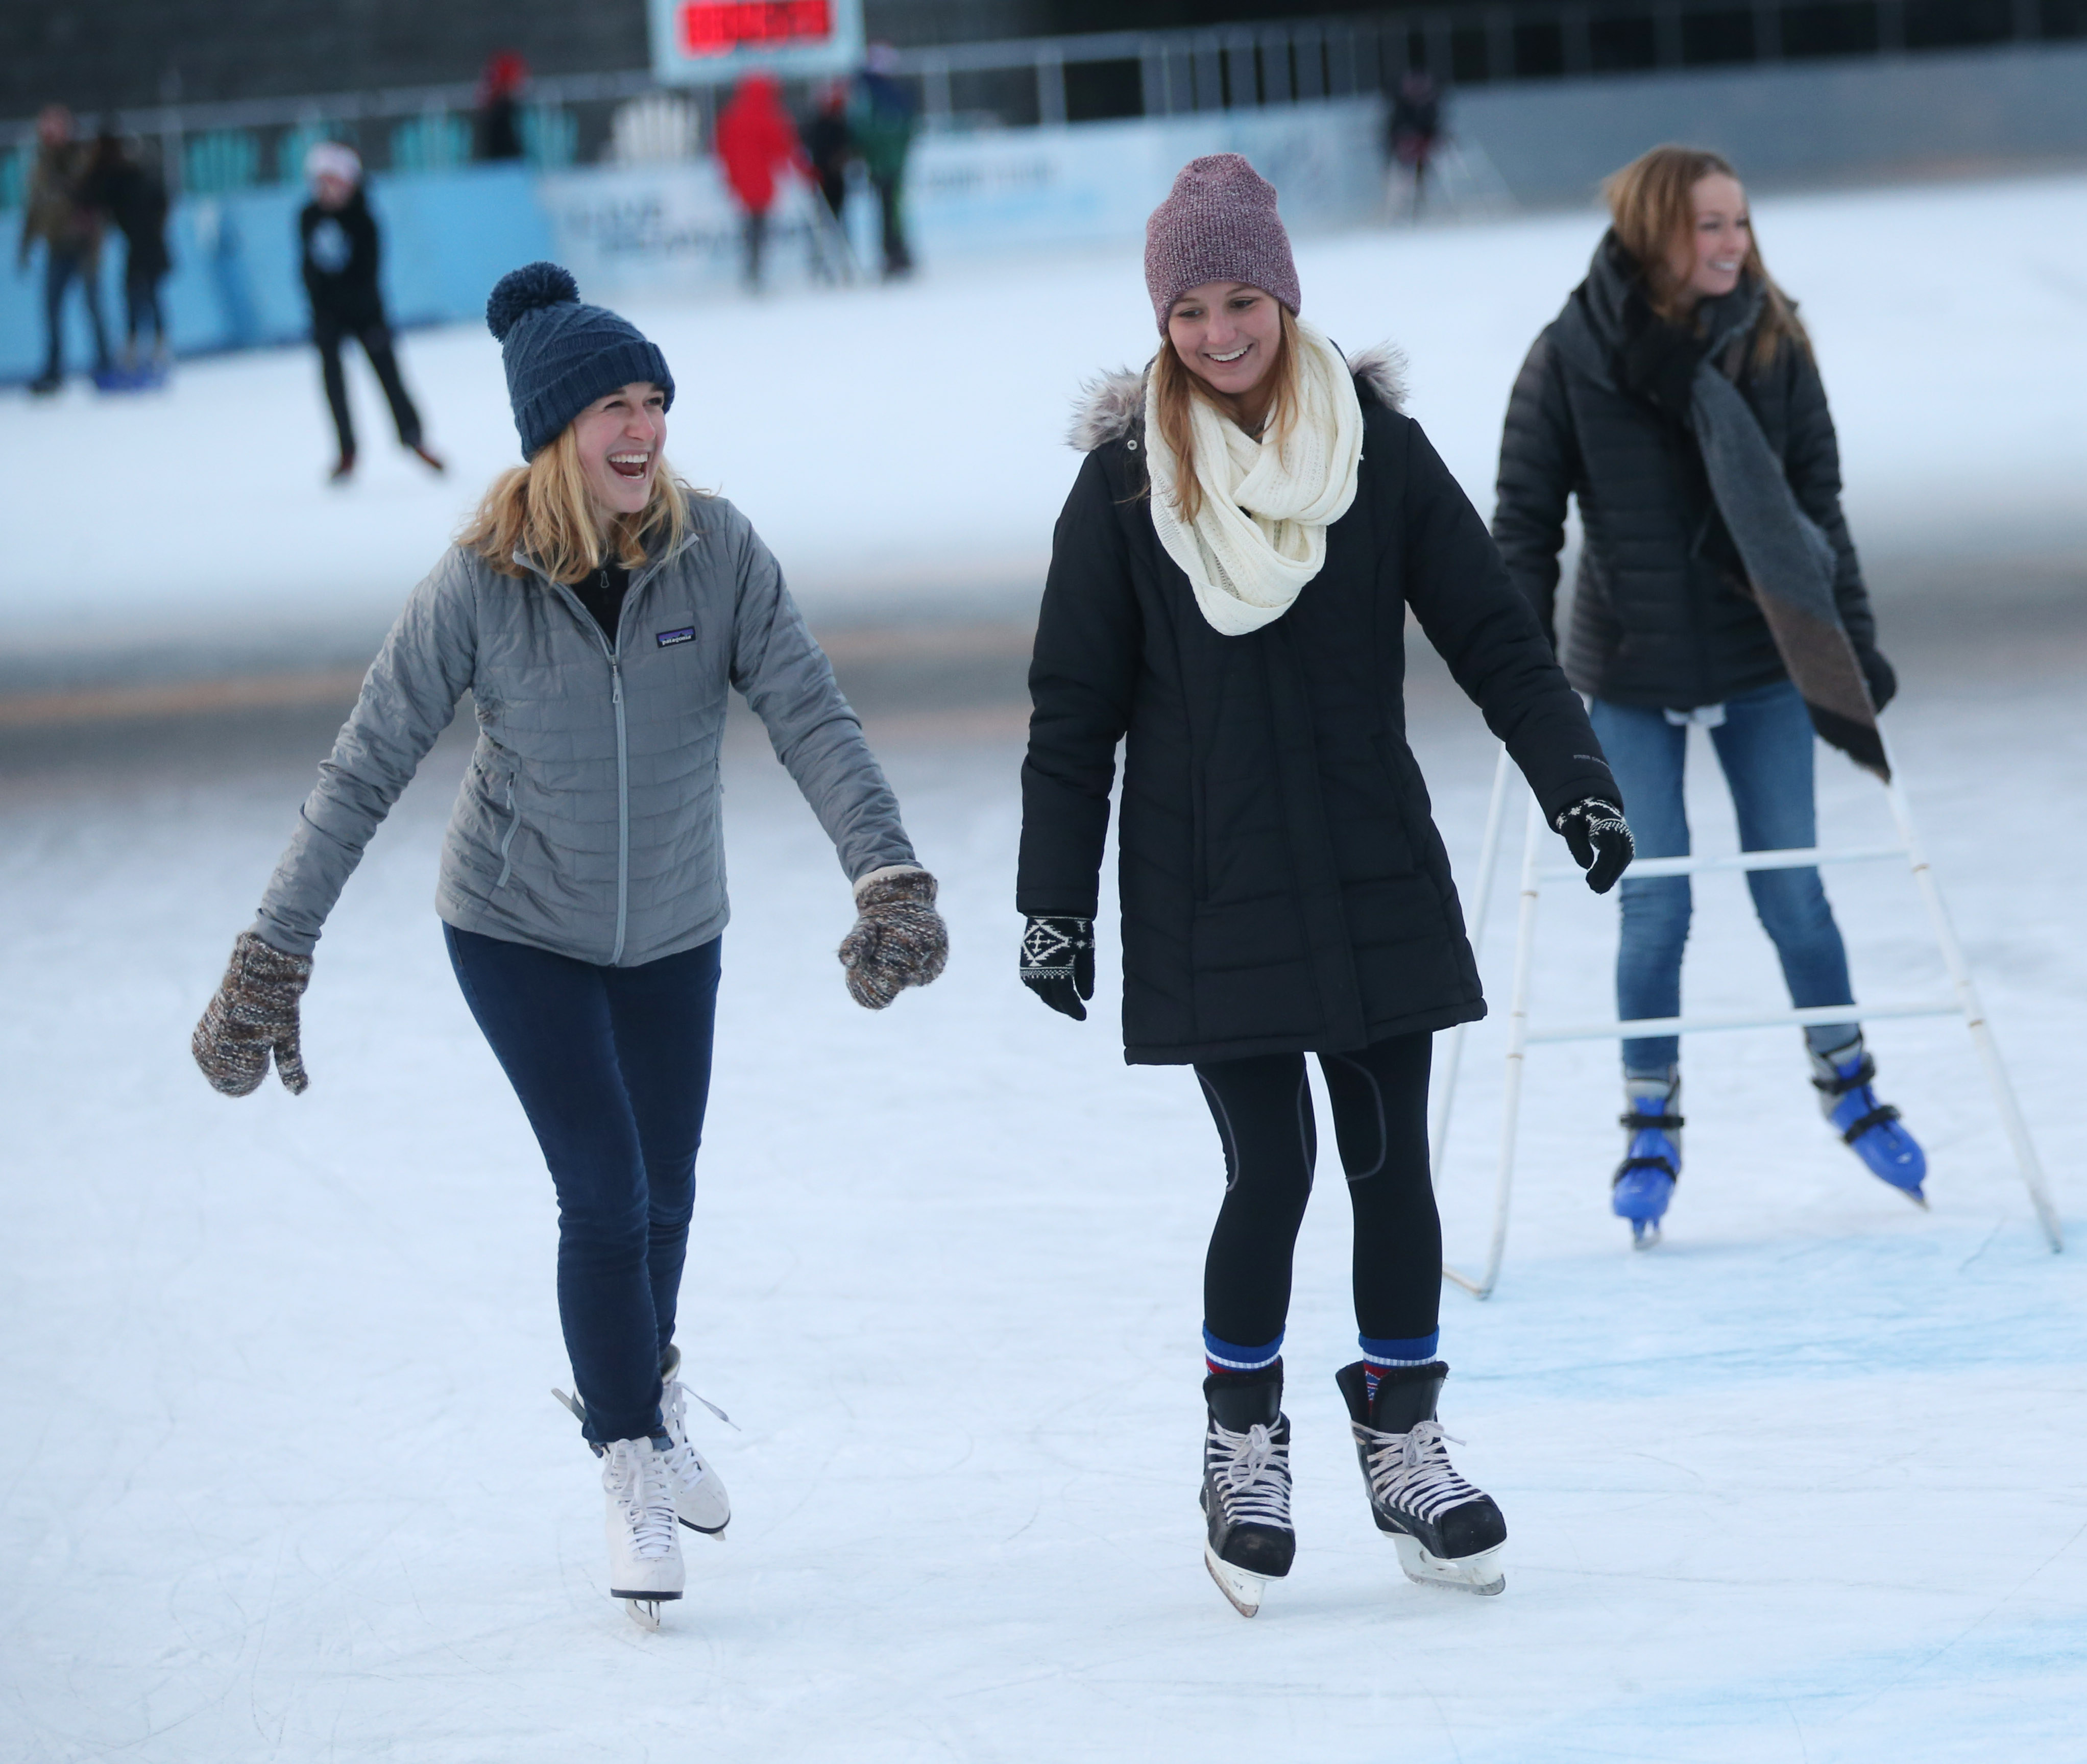 Hannah Johnston, left, and Katie Wolfe enjoy a recent visit to The Ice at Canalside. (Sharon Cantillon/Buffalo News)